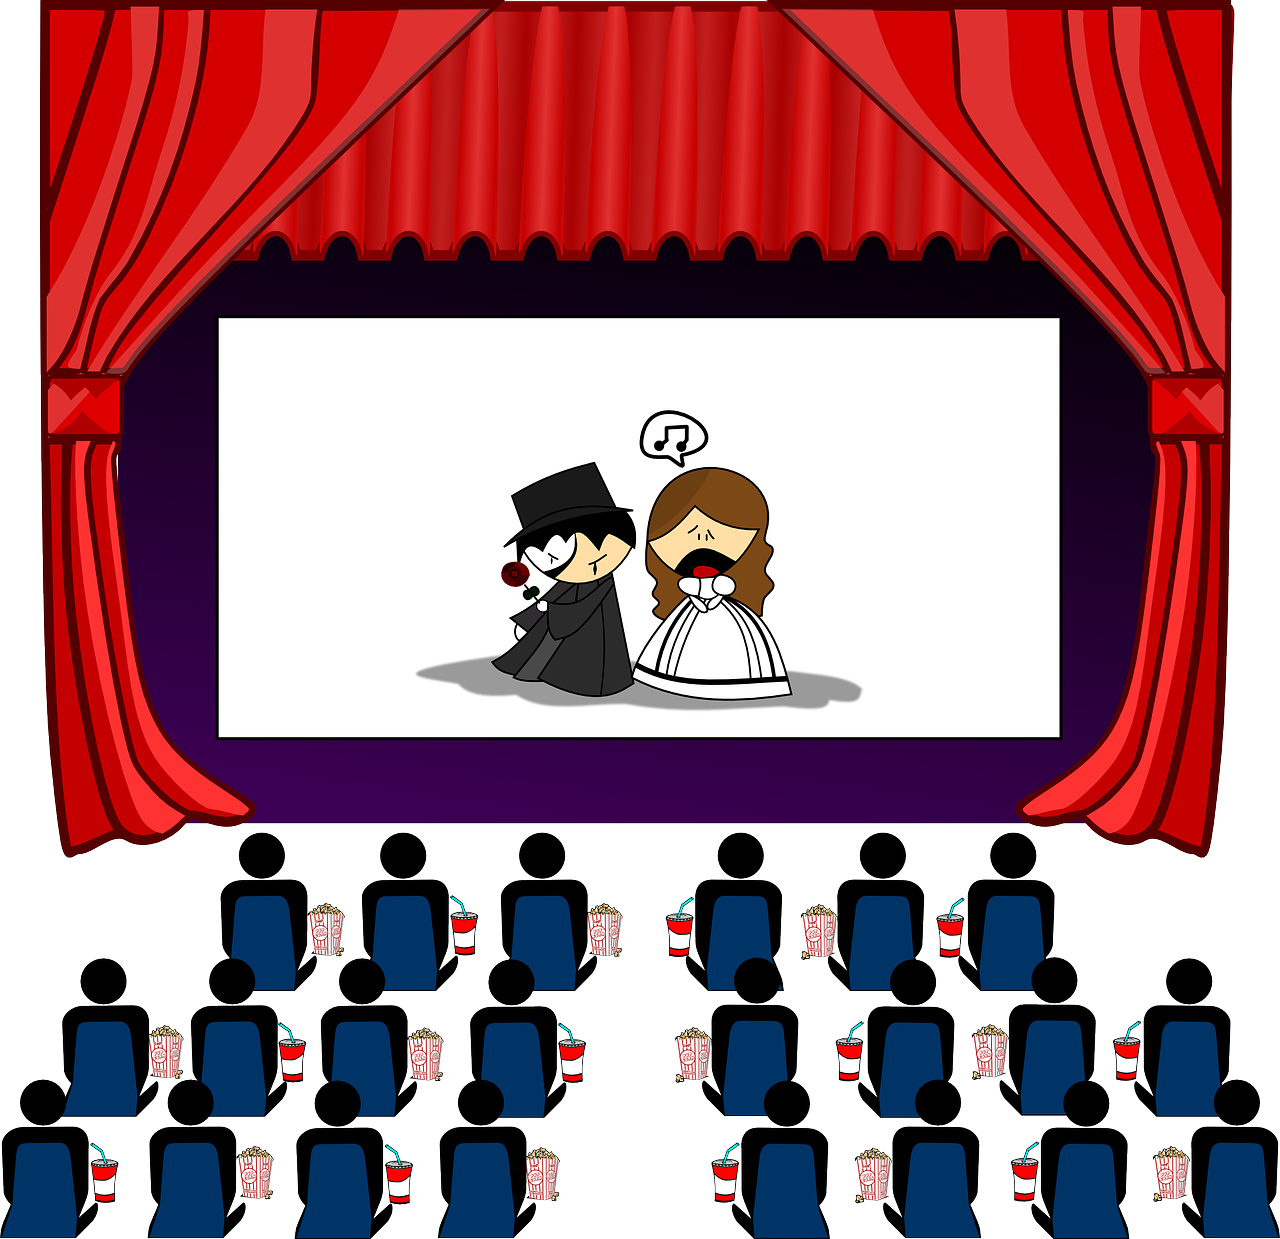 theater-158168_1280.png